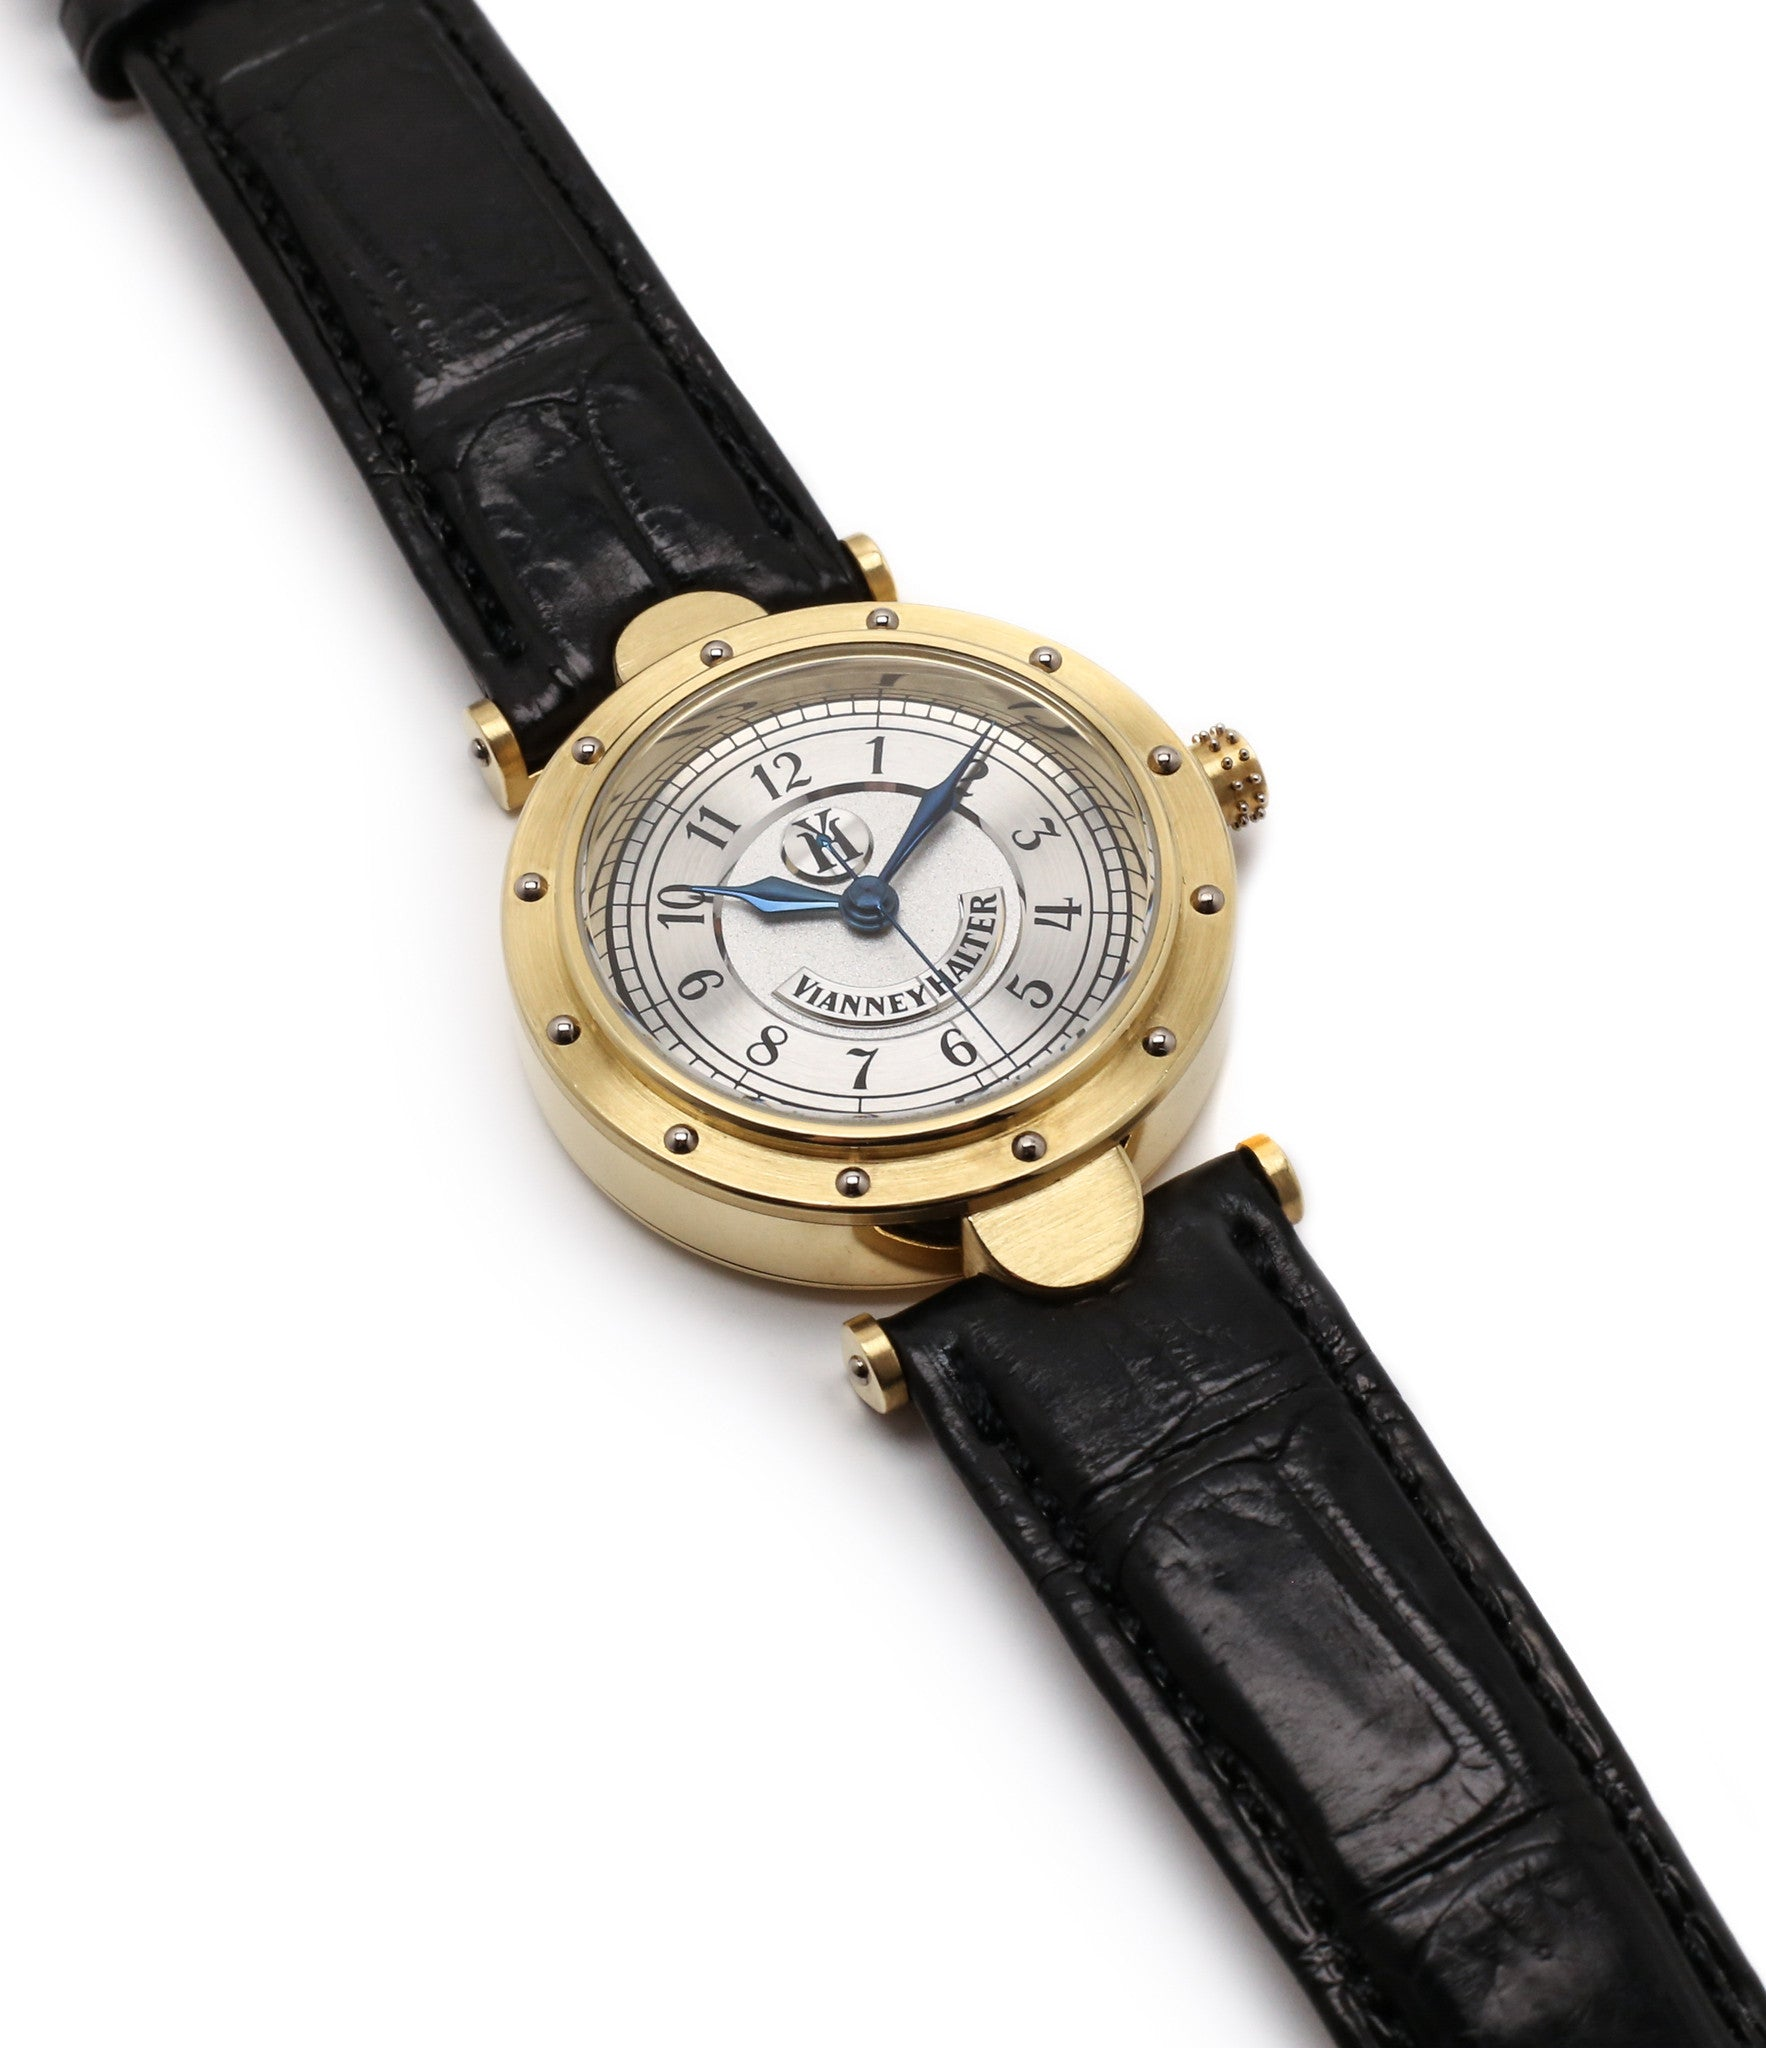 buy Vianney Halter Classic yellow gold time-only dress watch at A Collected Man the approve seller of independent watchmakers